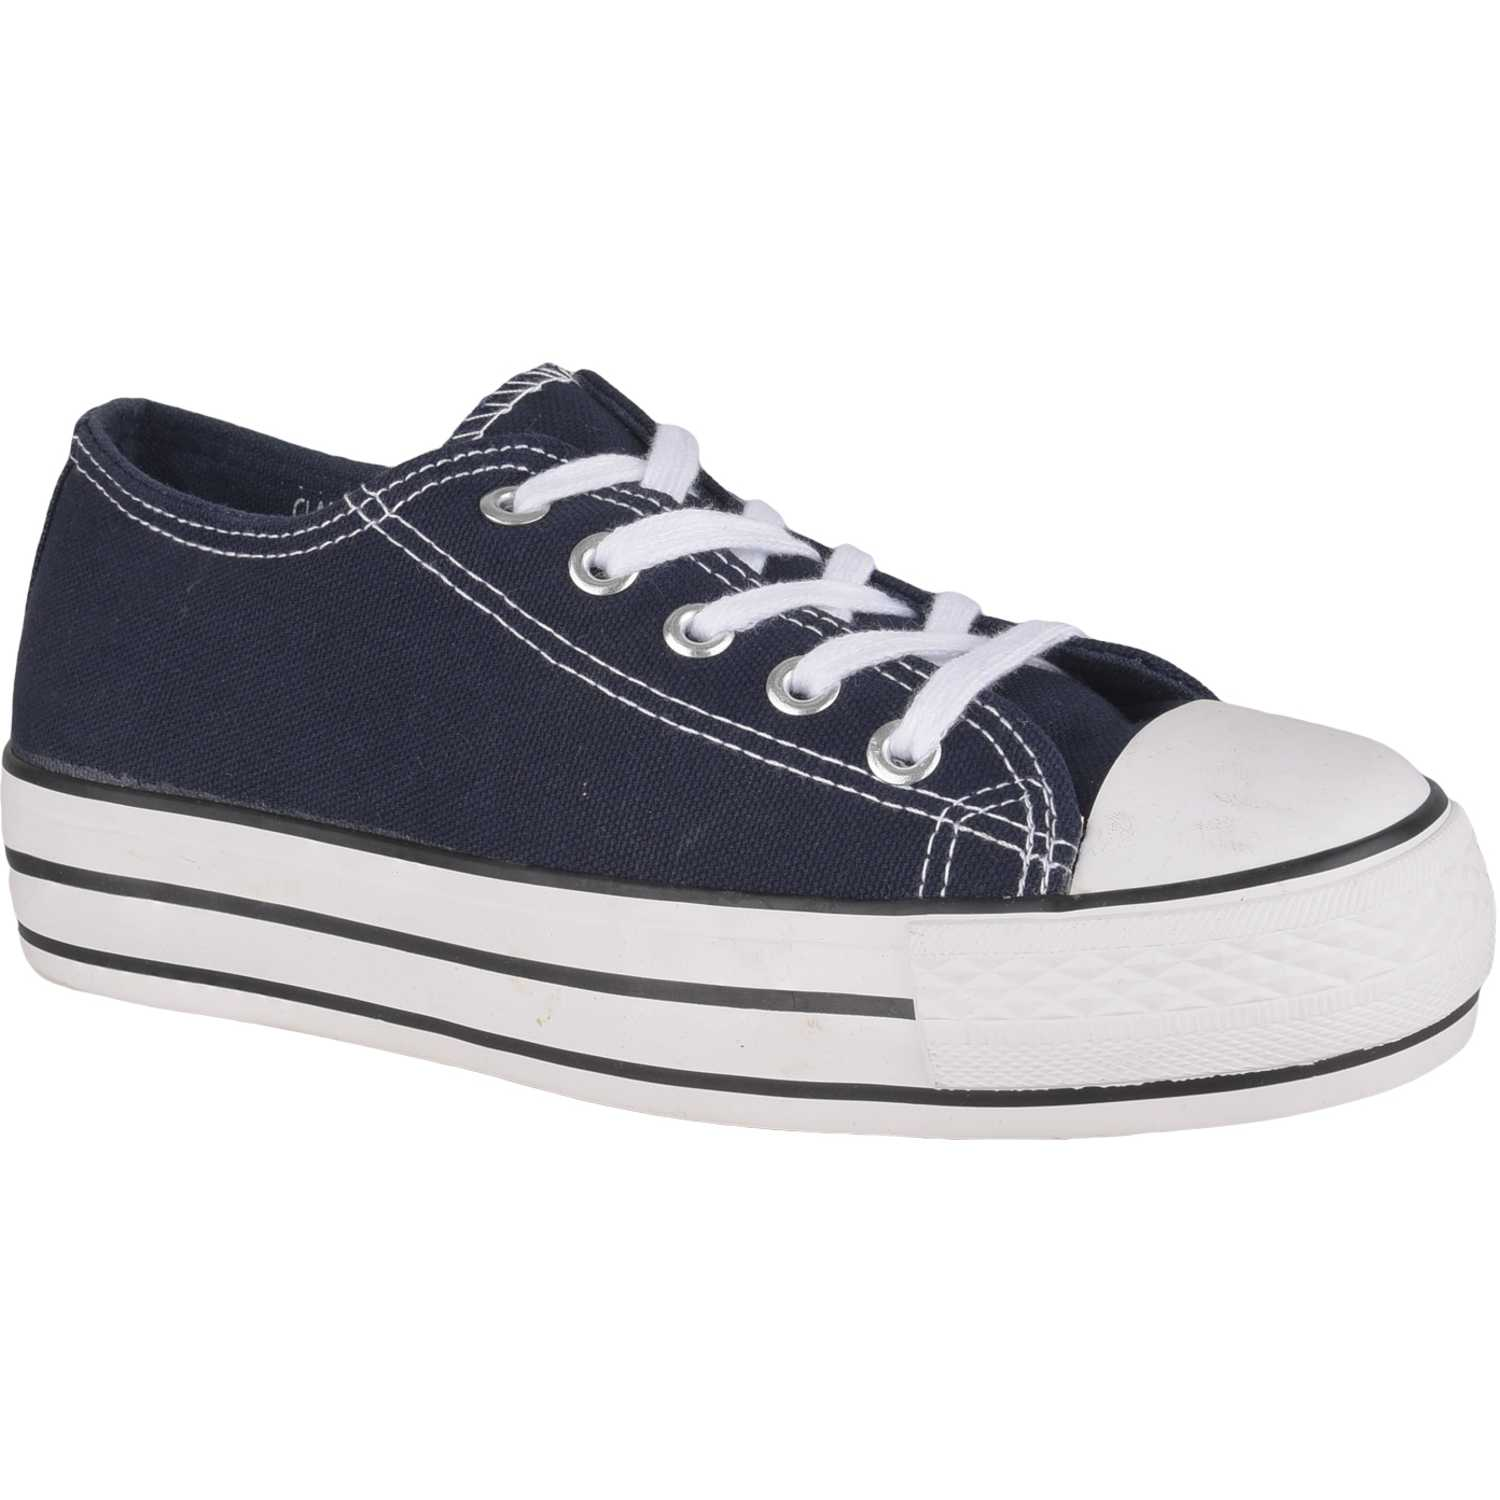 Just4u zc 4272 Azul Zapatillas Fashion